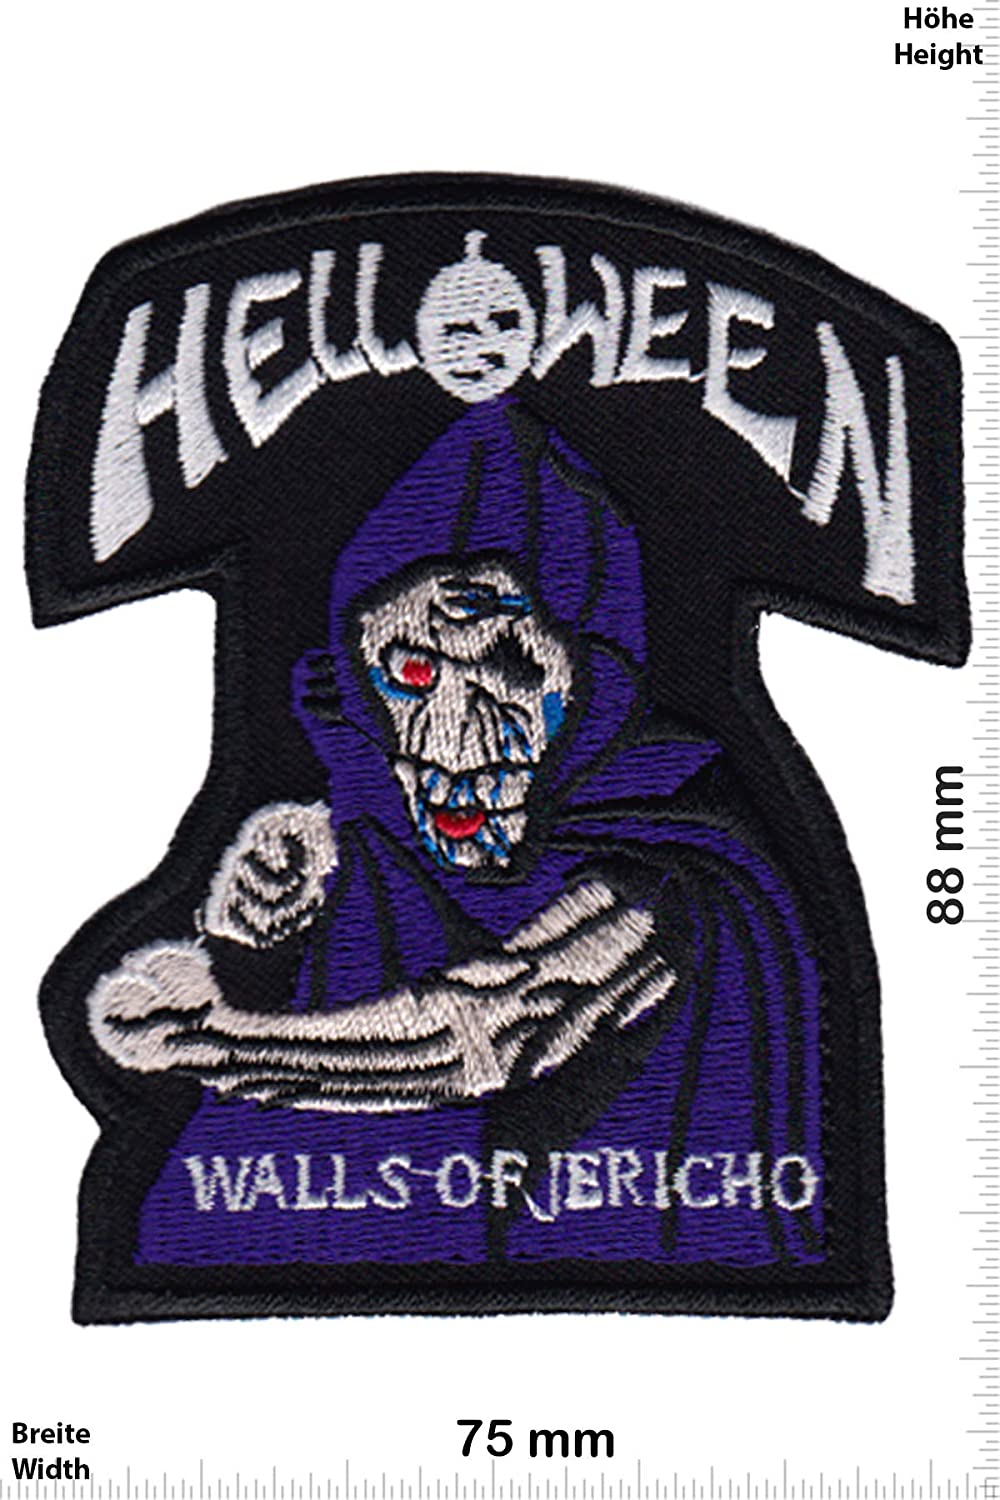 Patch - Helloween - Walls of Jericho - Speed- und Power-Metal-Band -Musique - -Helloween - Iron on Applique Embroidery Écusson brodé Costume Cadeau- Give